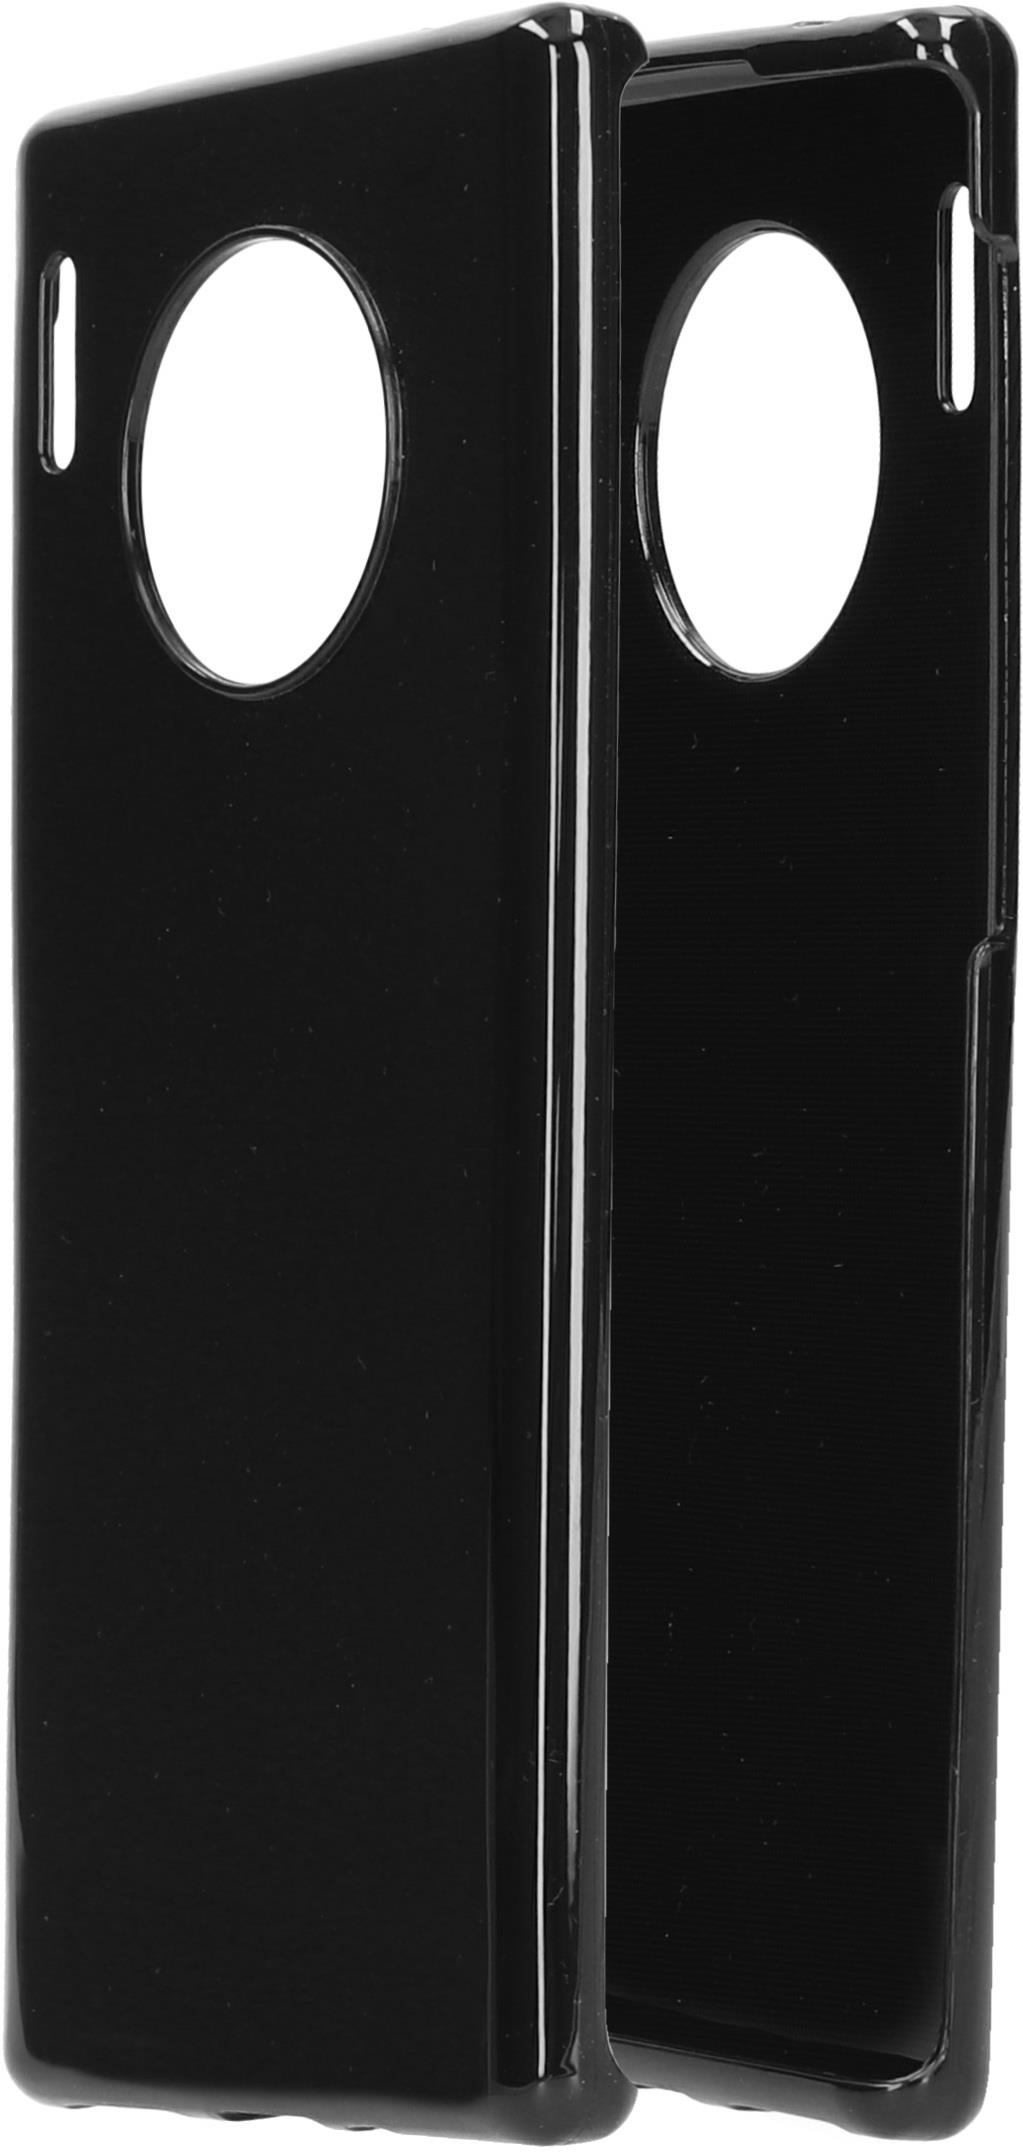 Mobiparts Classic Cover case voor Huawei Mate 30 Pro